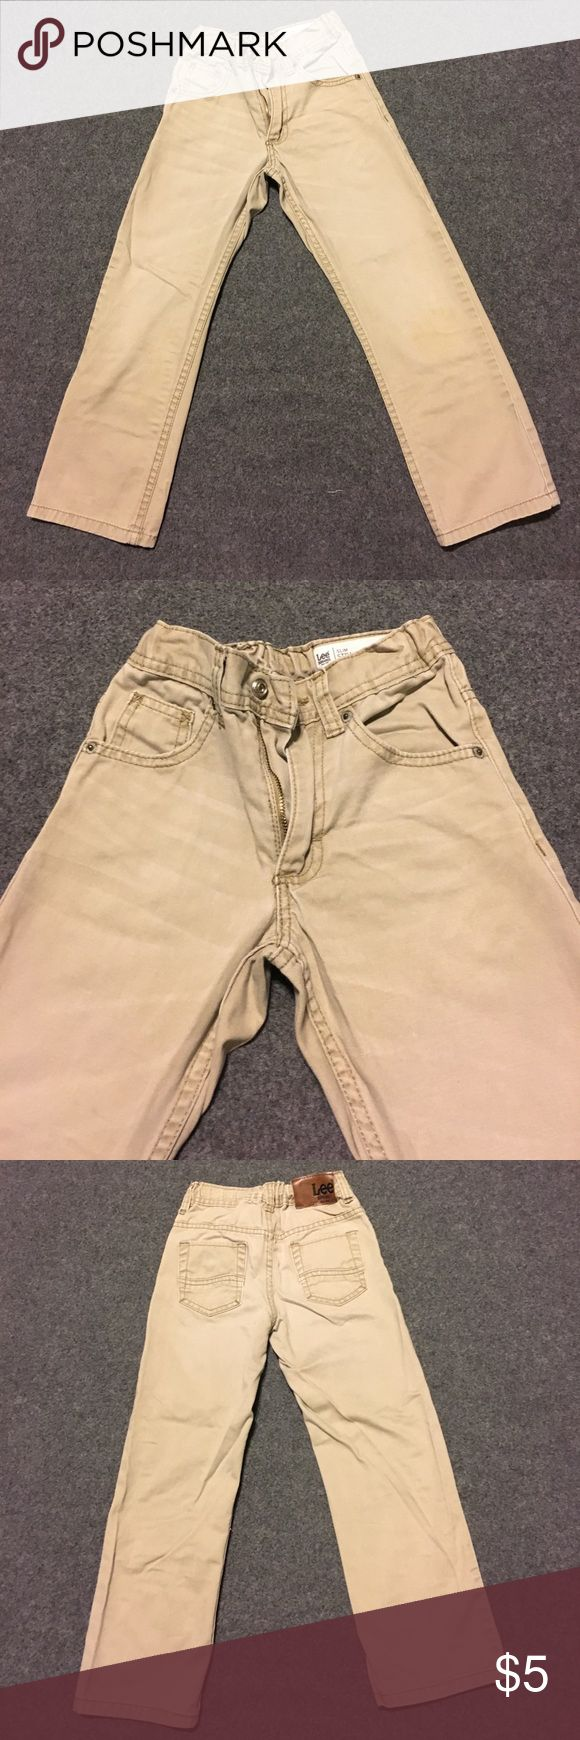 Boys Pants No holes or tears. Small stains around knees. You can see in pics. 100% cotton. Size 7 reg. Slim Straight Leg. Lee Dungarees Bottoms